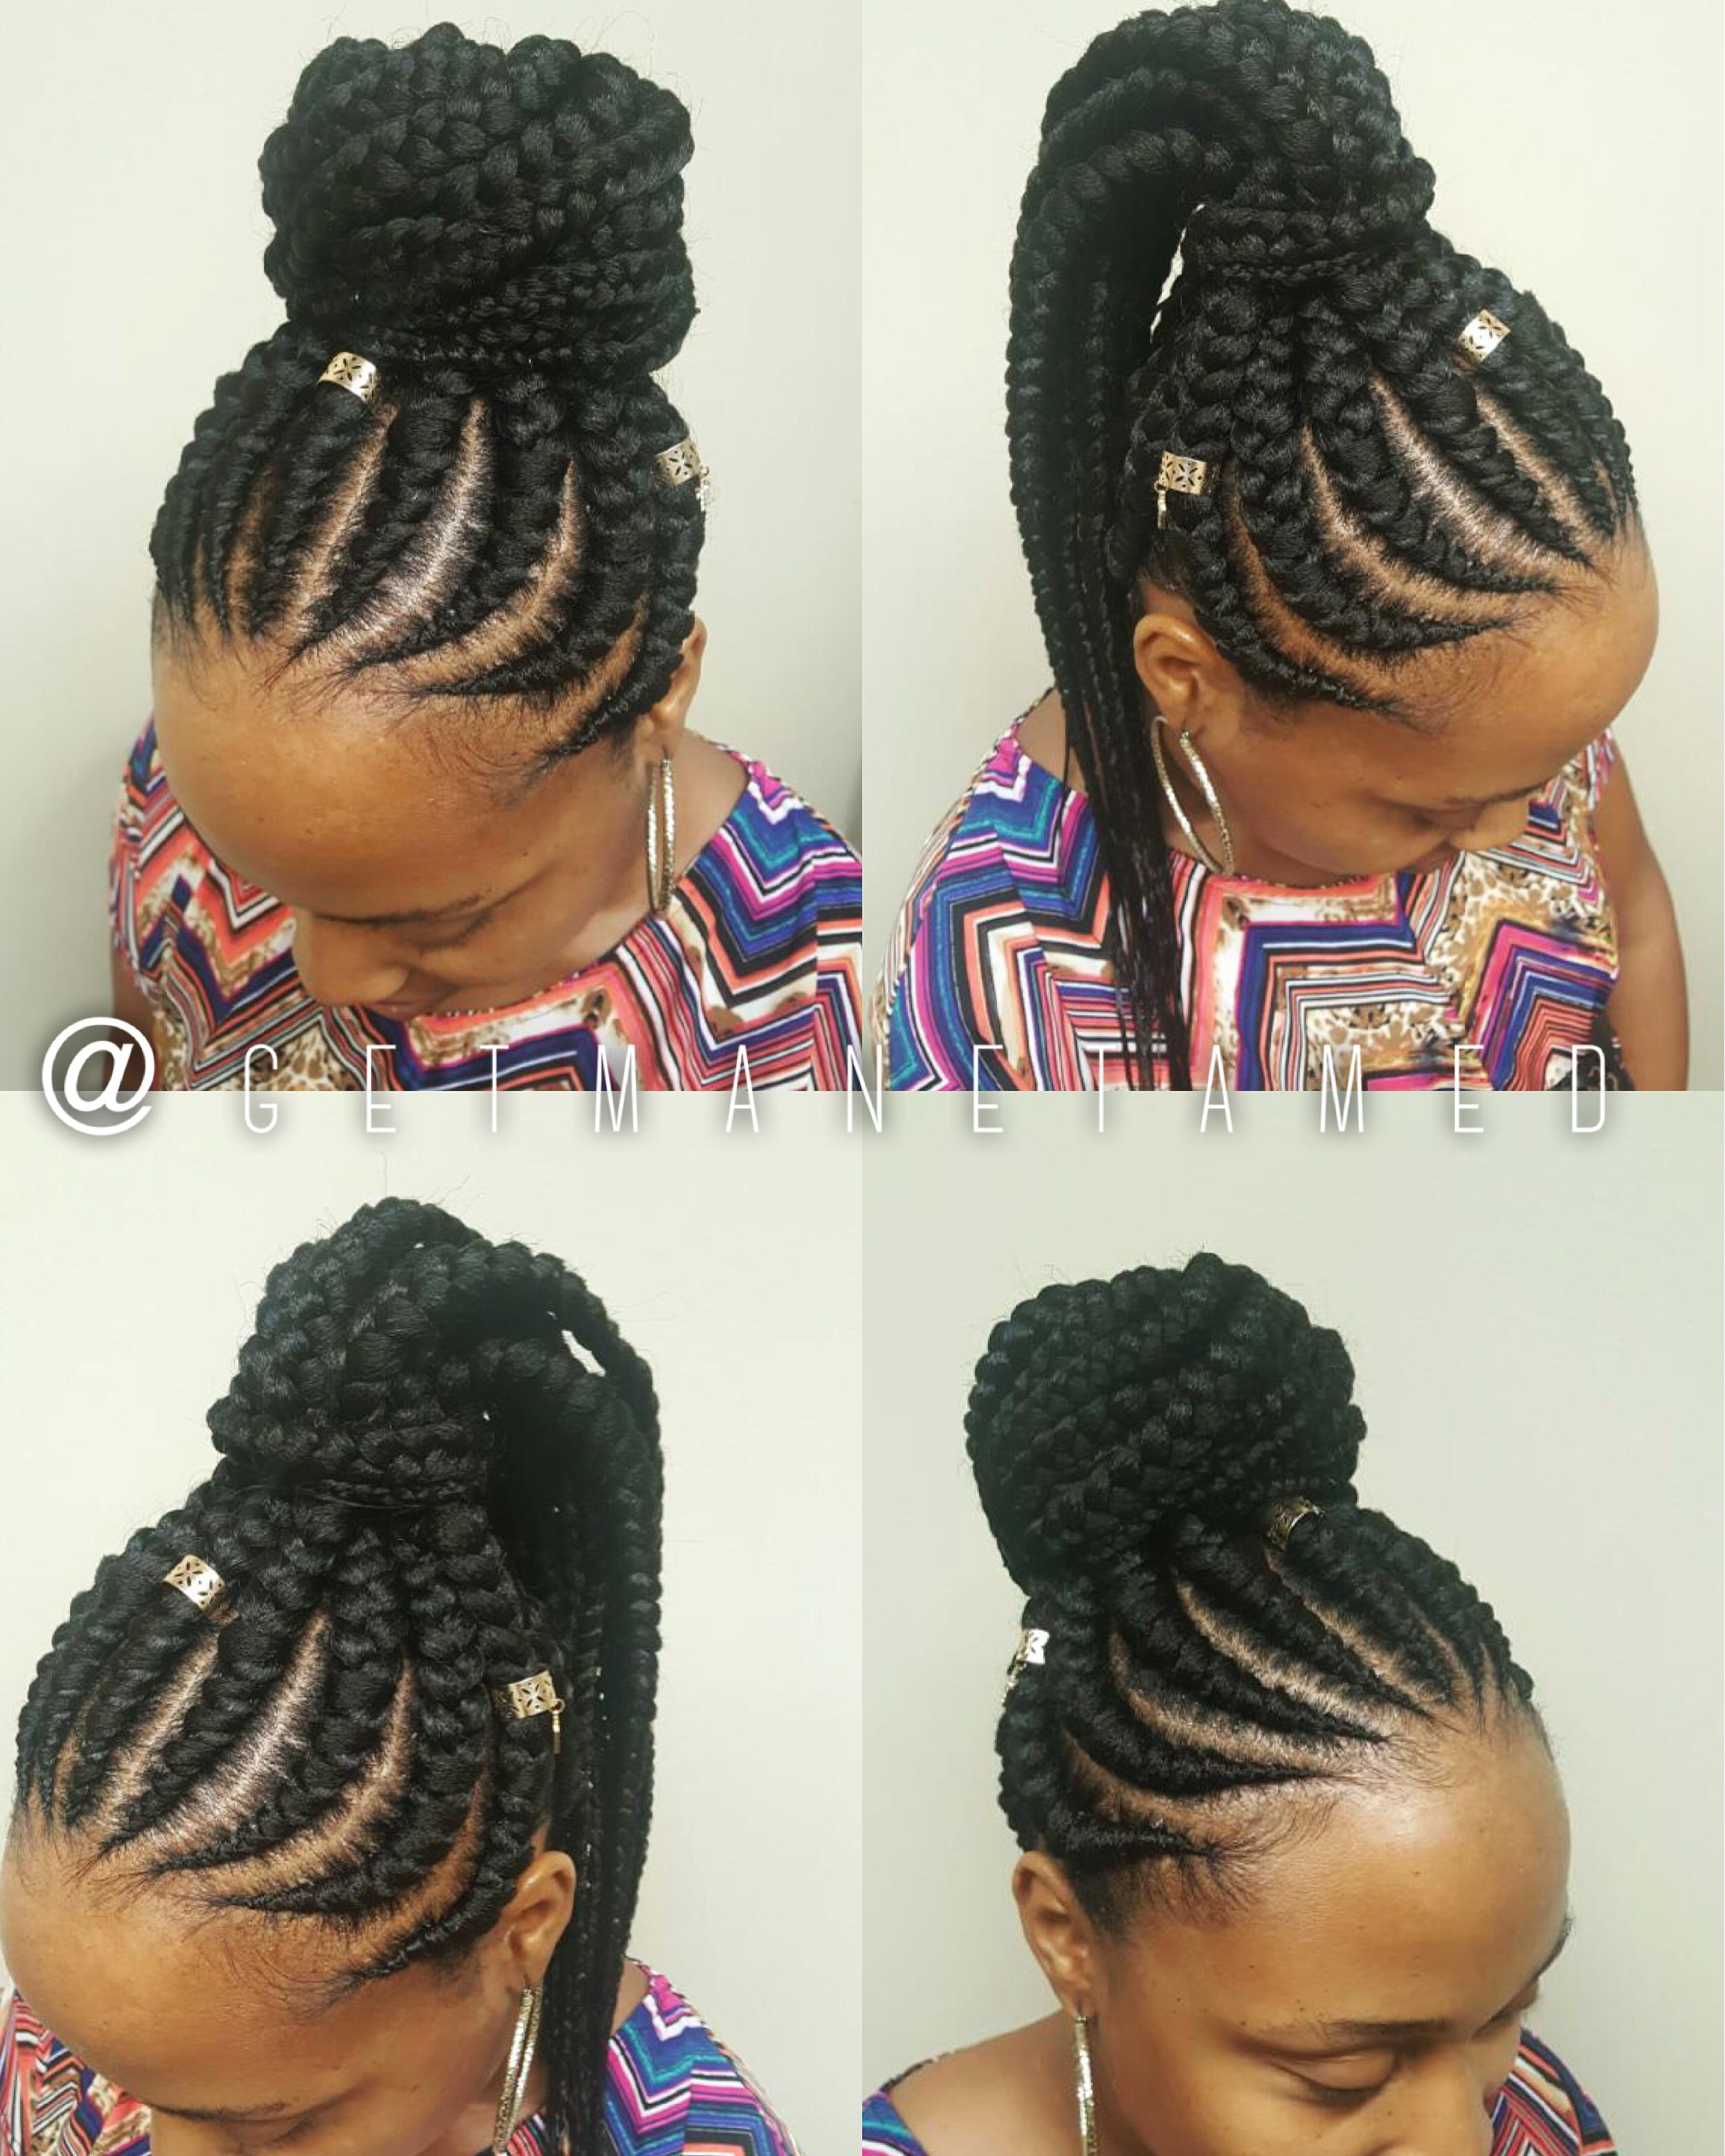 40 Totally Gorgeous Ghana Braids Hairstyles All About Hair